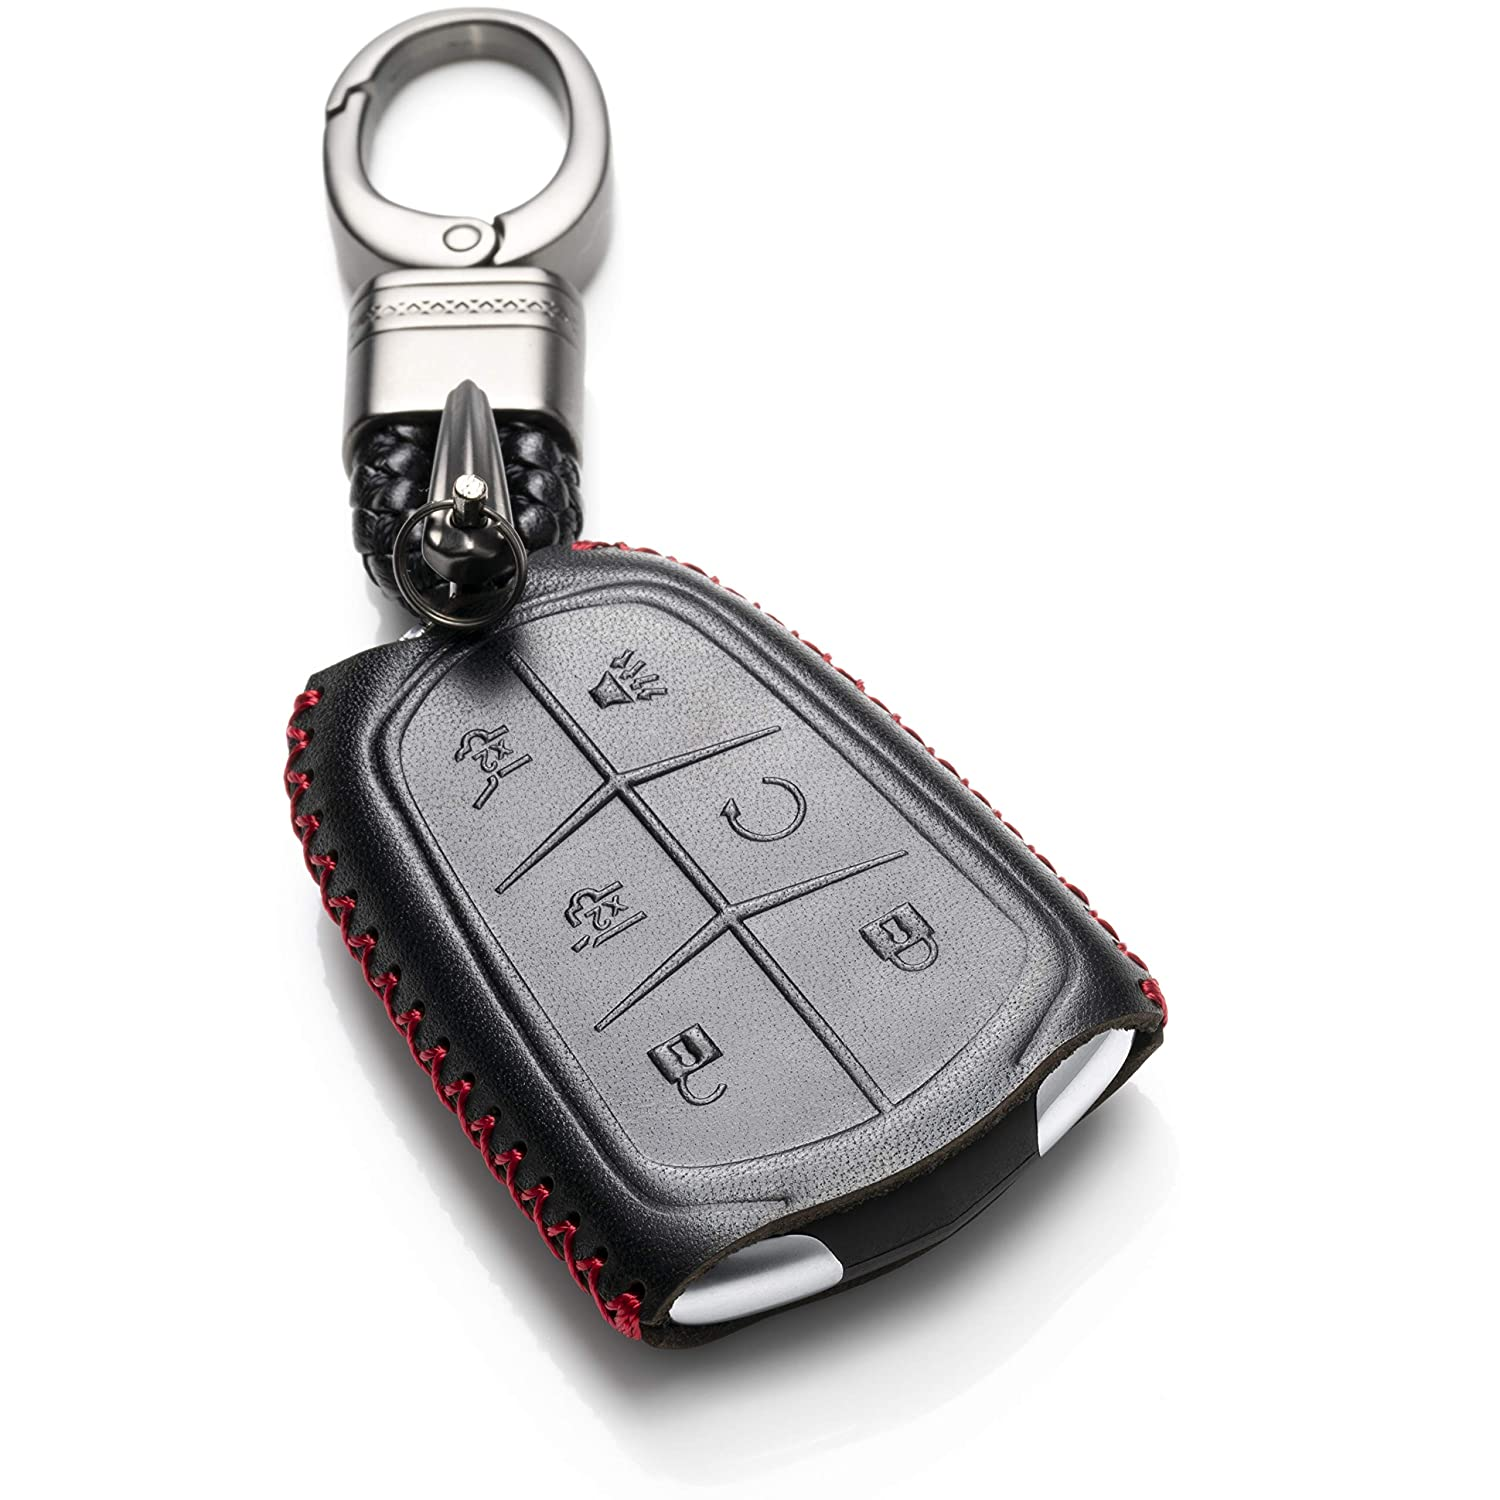 6 Buttons, Black//Red Escalade ESV Vitodeco Genuine Leather Smart Key Keyless Remote Entry Fob Case Cover with Key Chain for 2015-2019 Cadillac Escalade